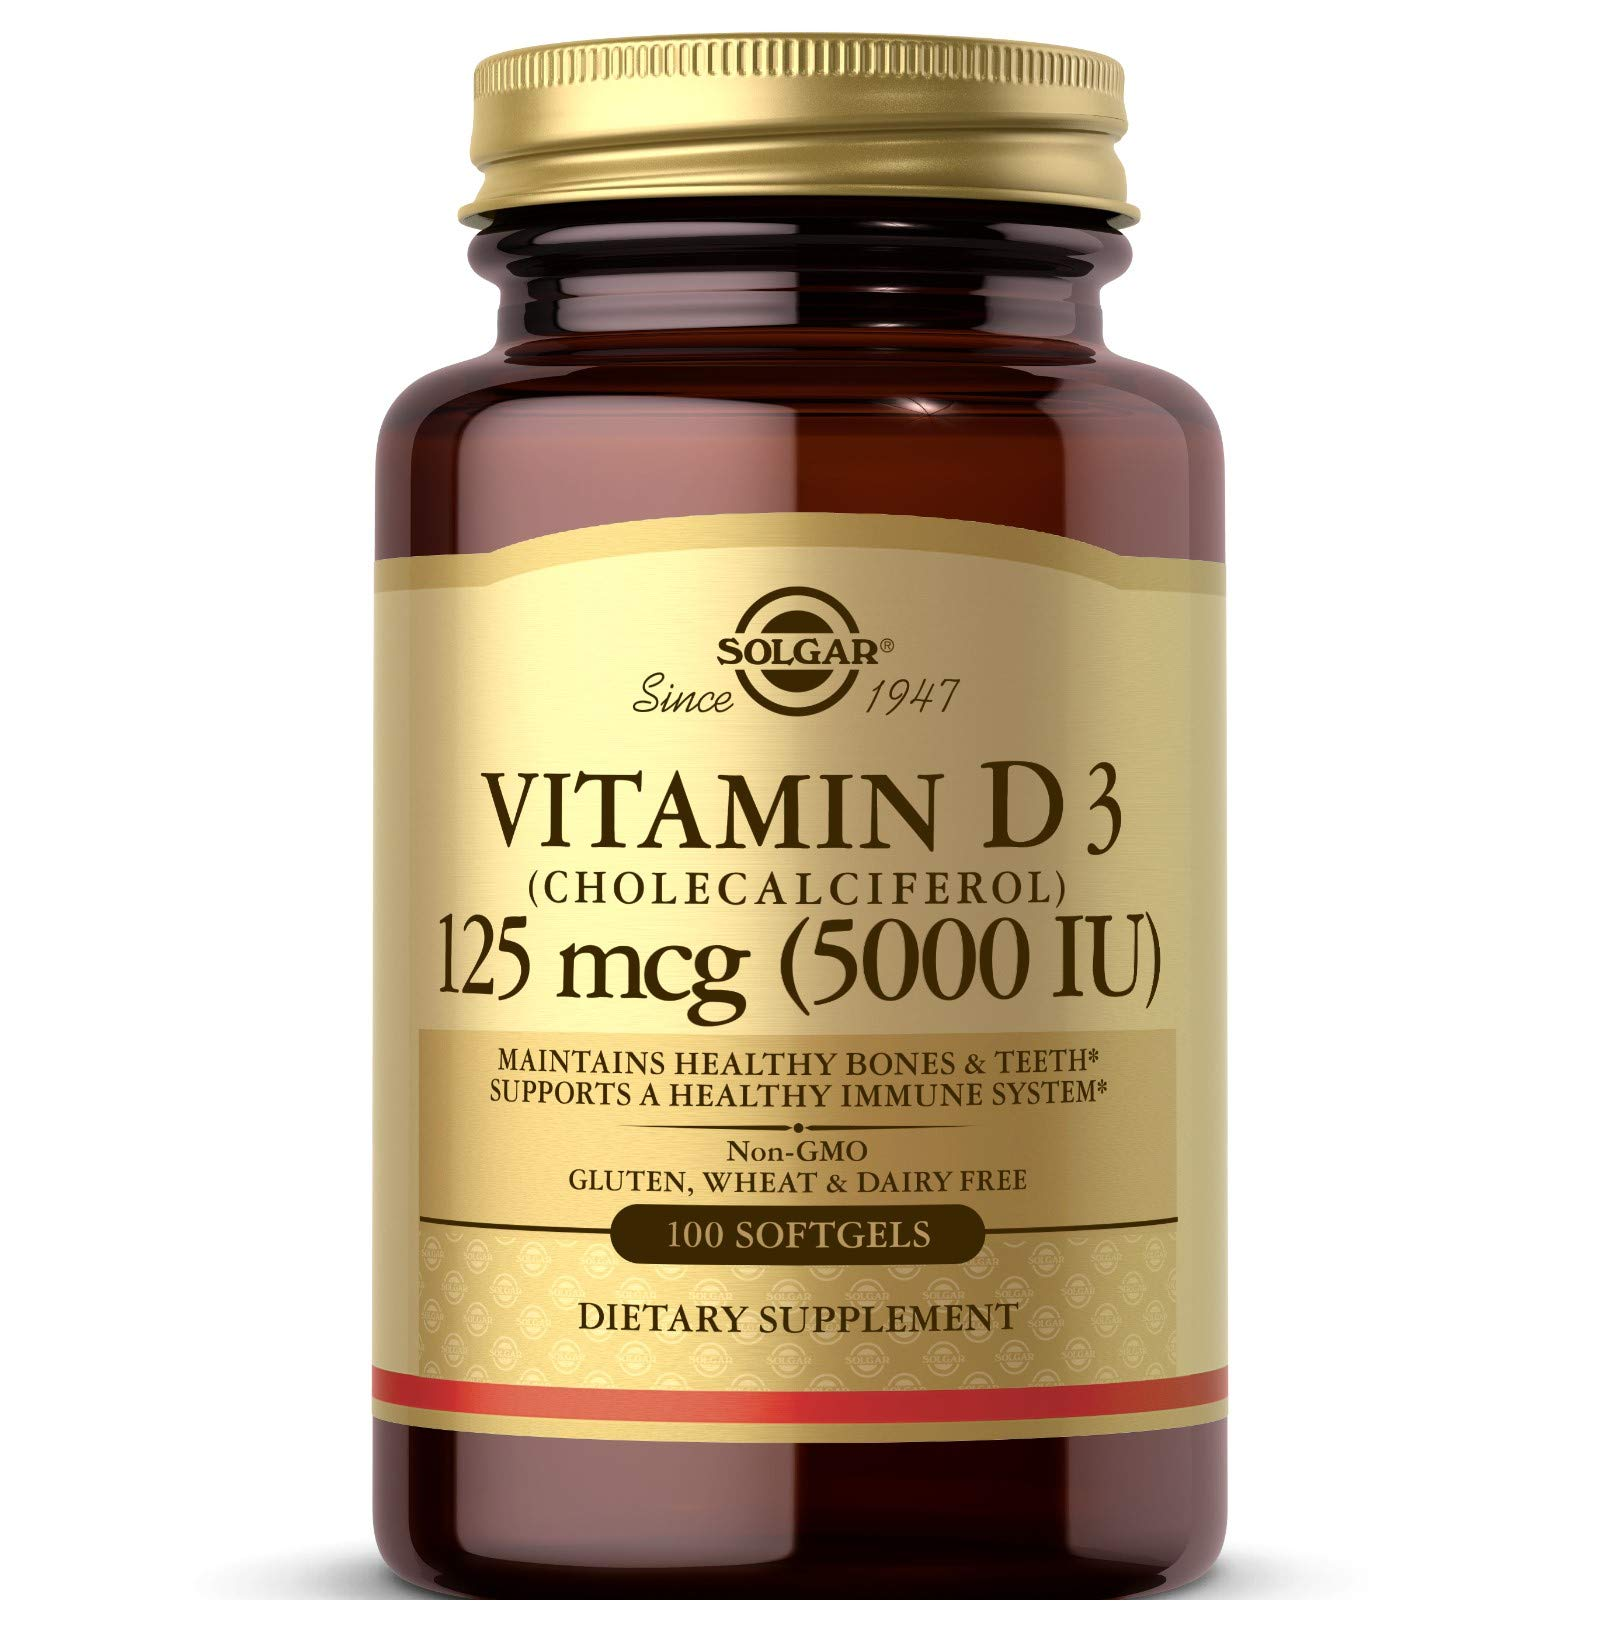 Solgar Vitamin D3 (Cholecalciferol) 125 MCG (5000 IU), 100 Softgels - Helps Maintain Healthy Bones & Teeth - Immune System Support - Non GMO, Gluten Free, Dairy Free - 100 Servings